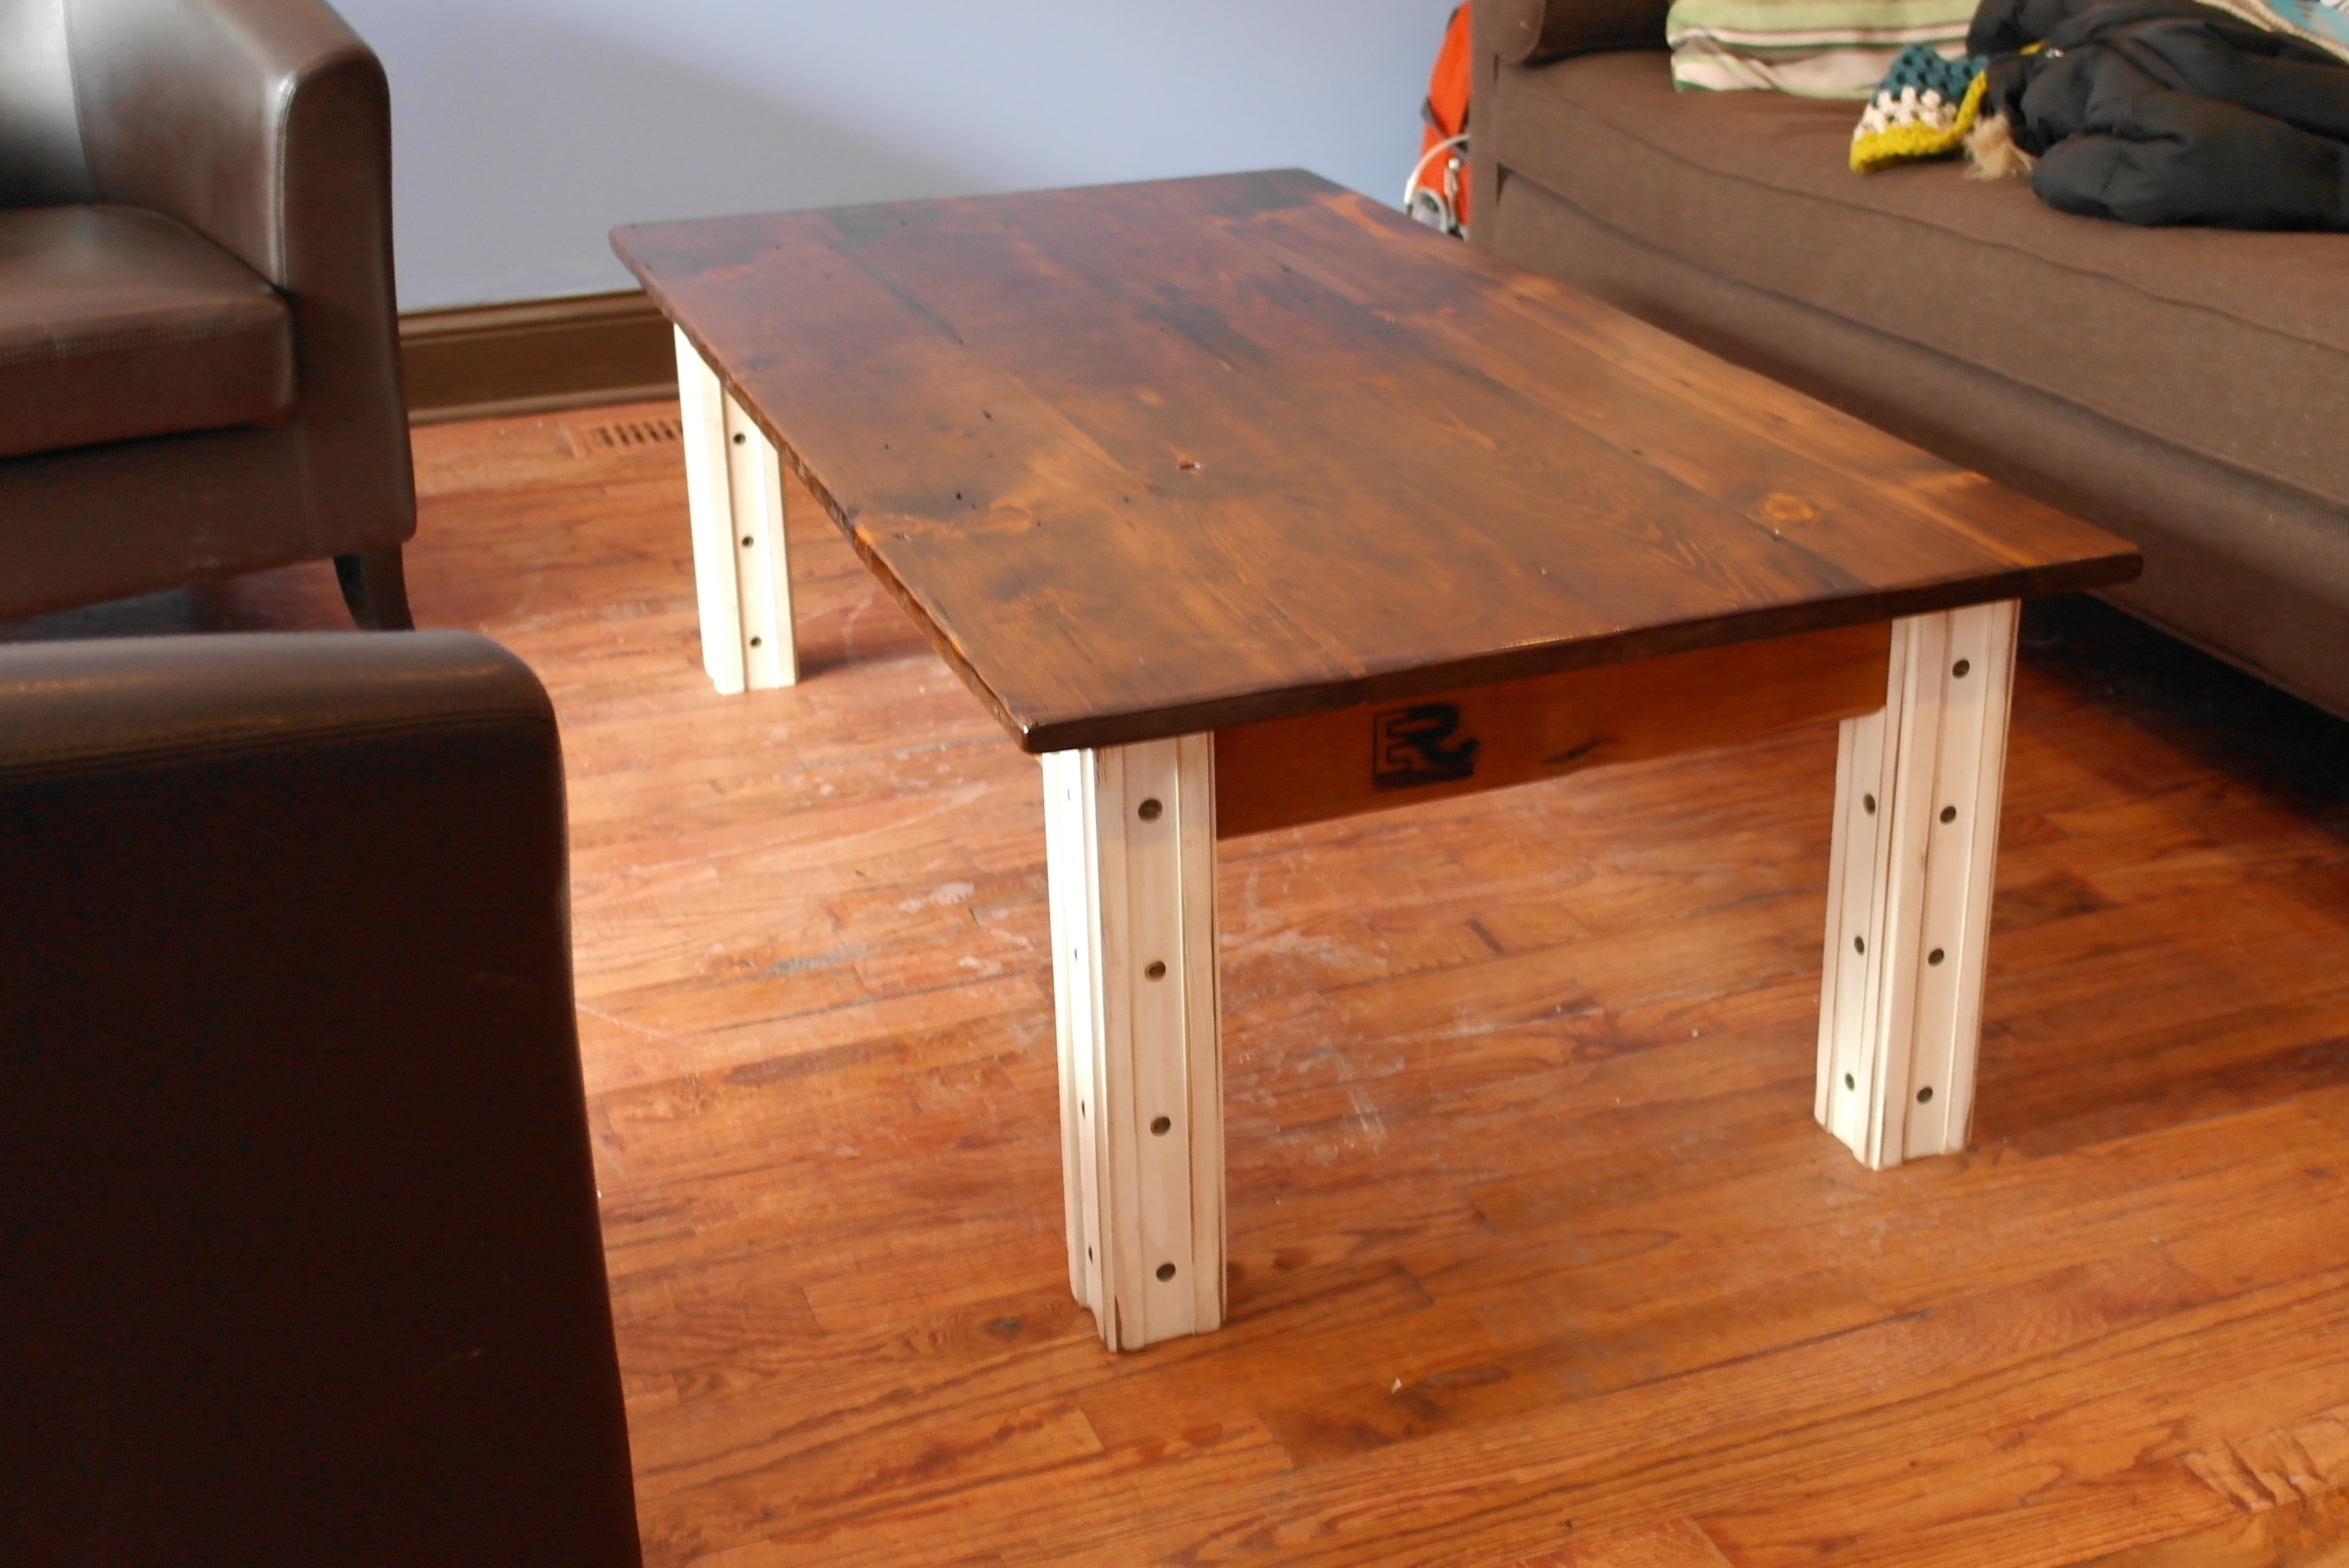 How To Make Wood Table Legs